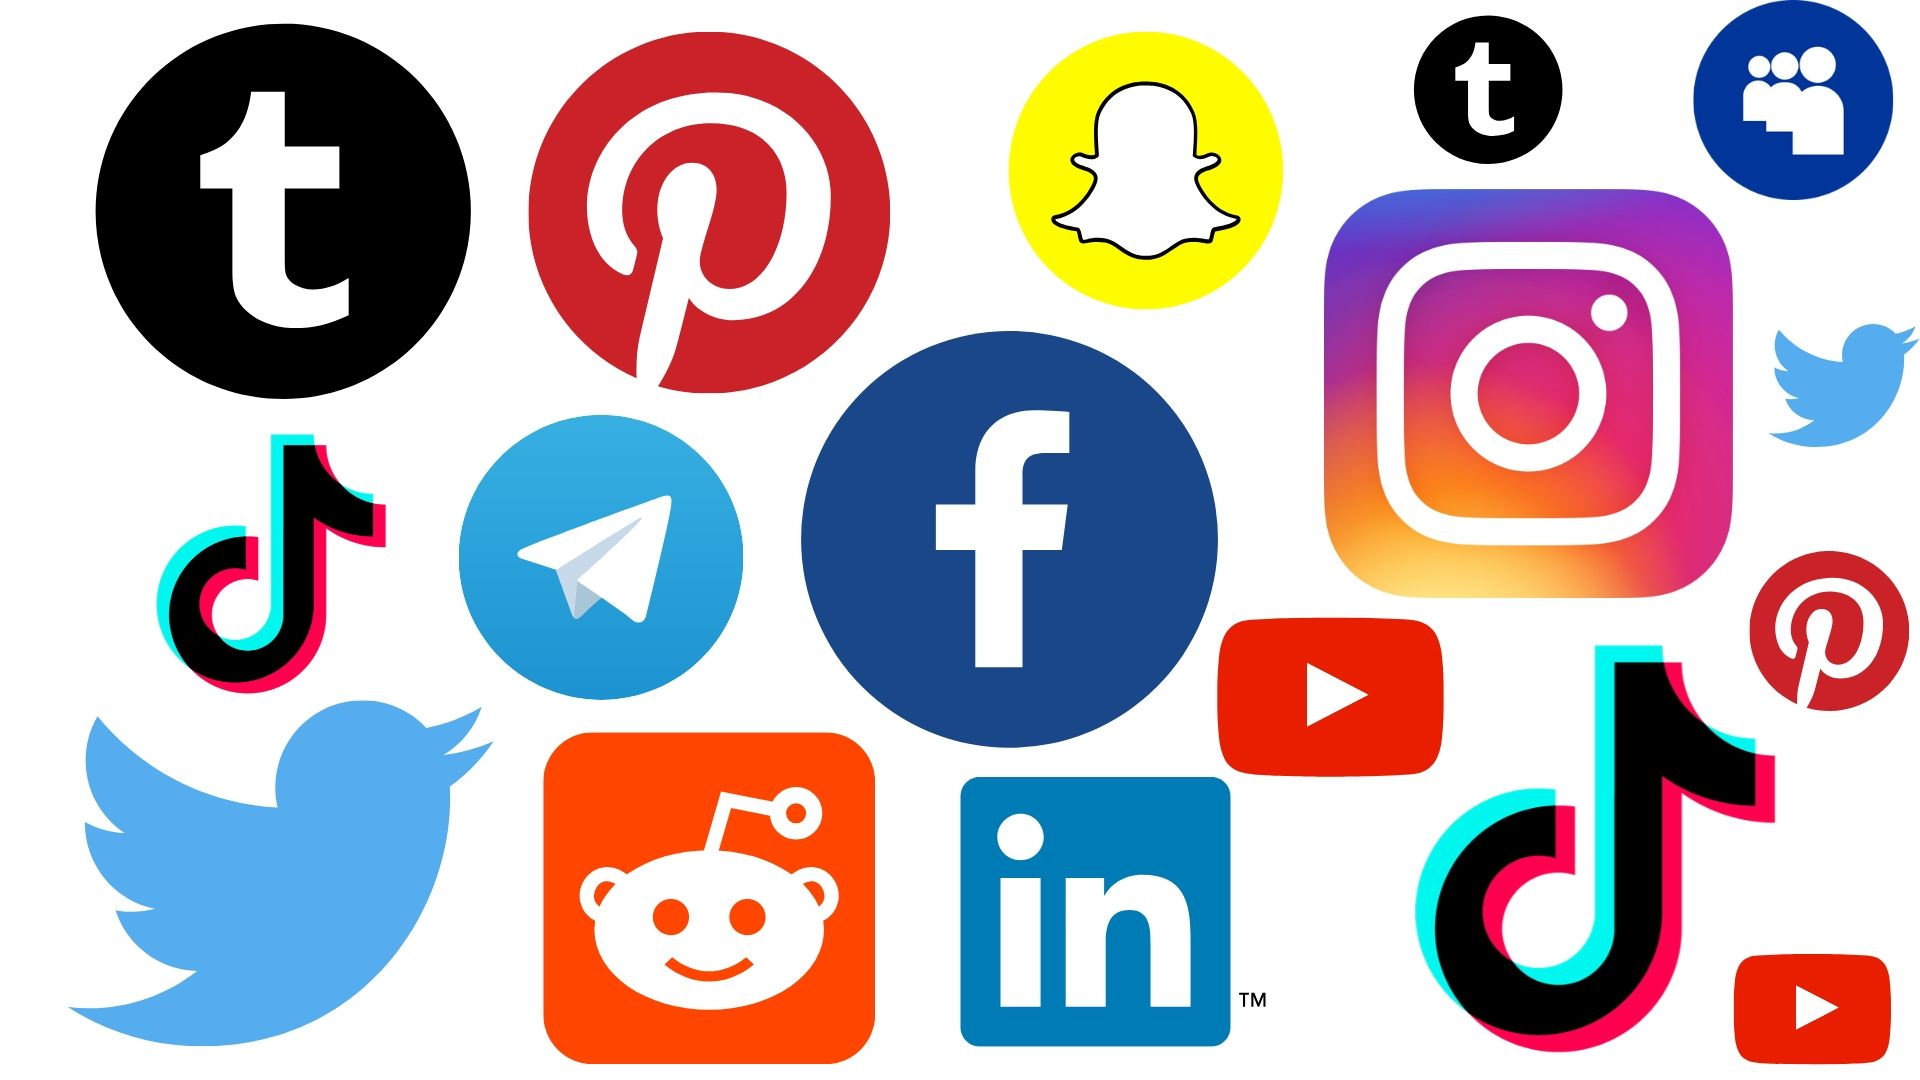 A collection of social media app logos, including Snapchat, Facebook, and Instagram.